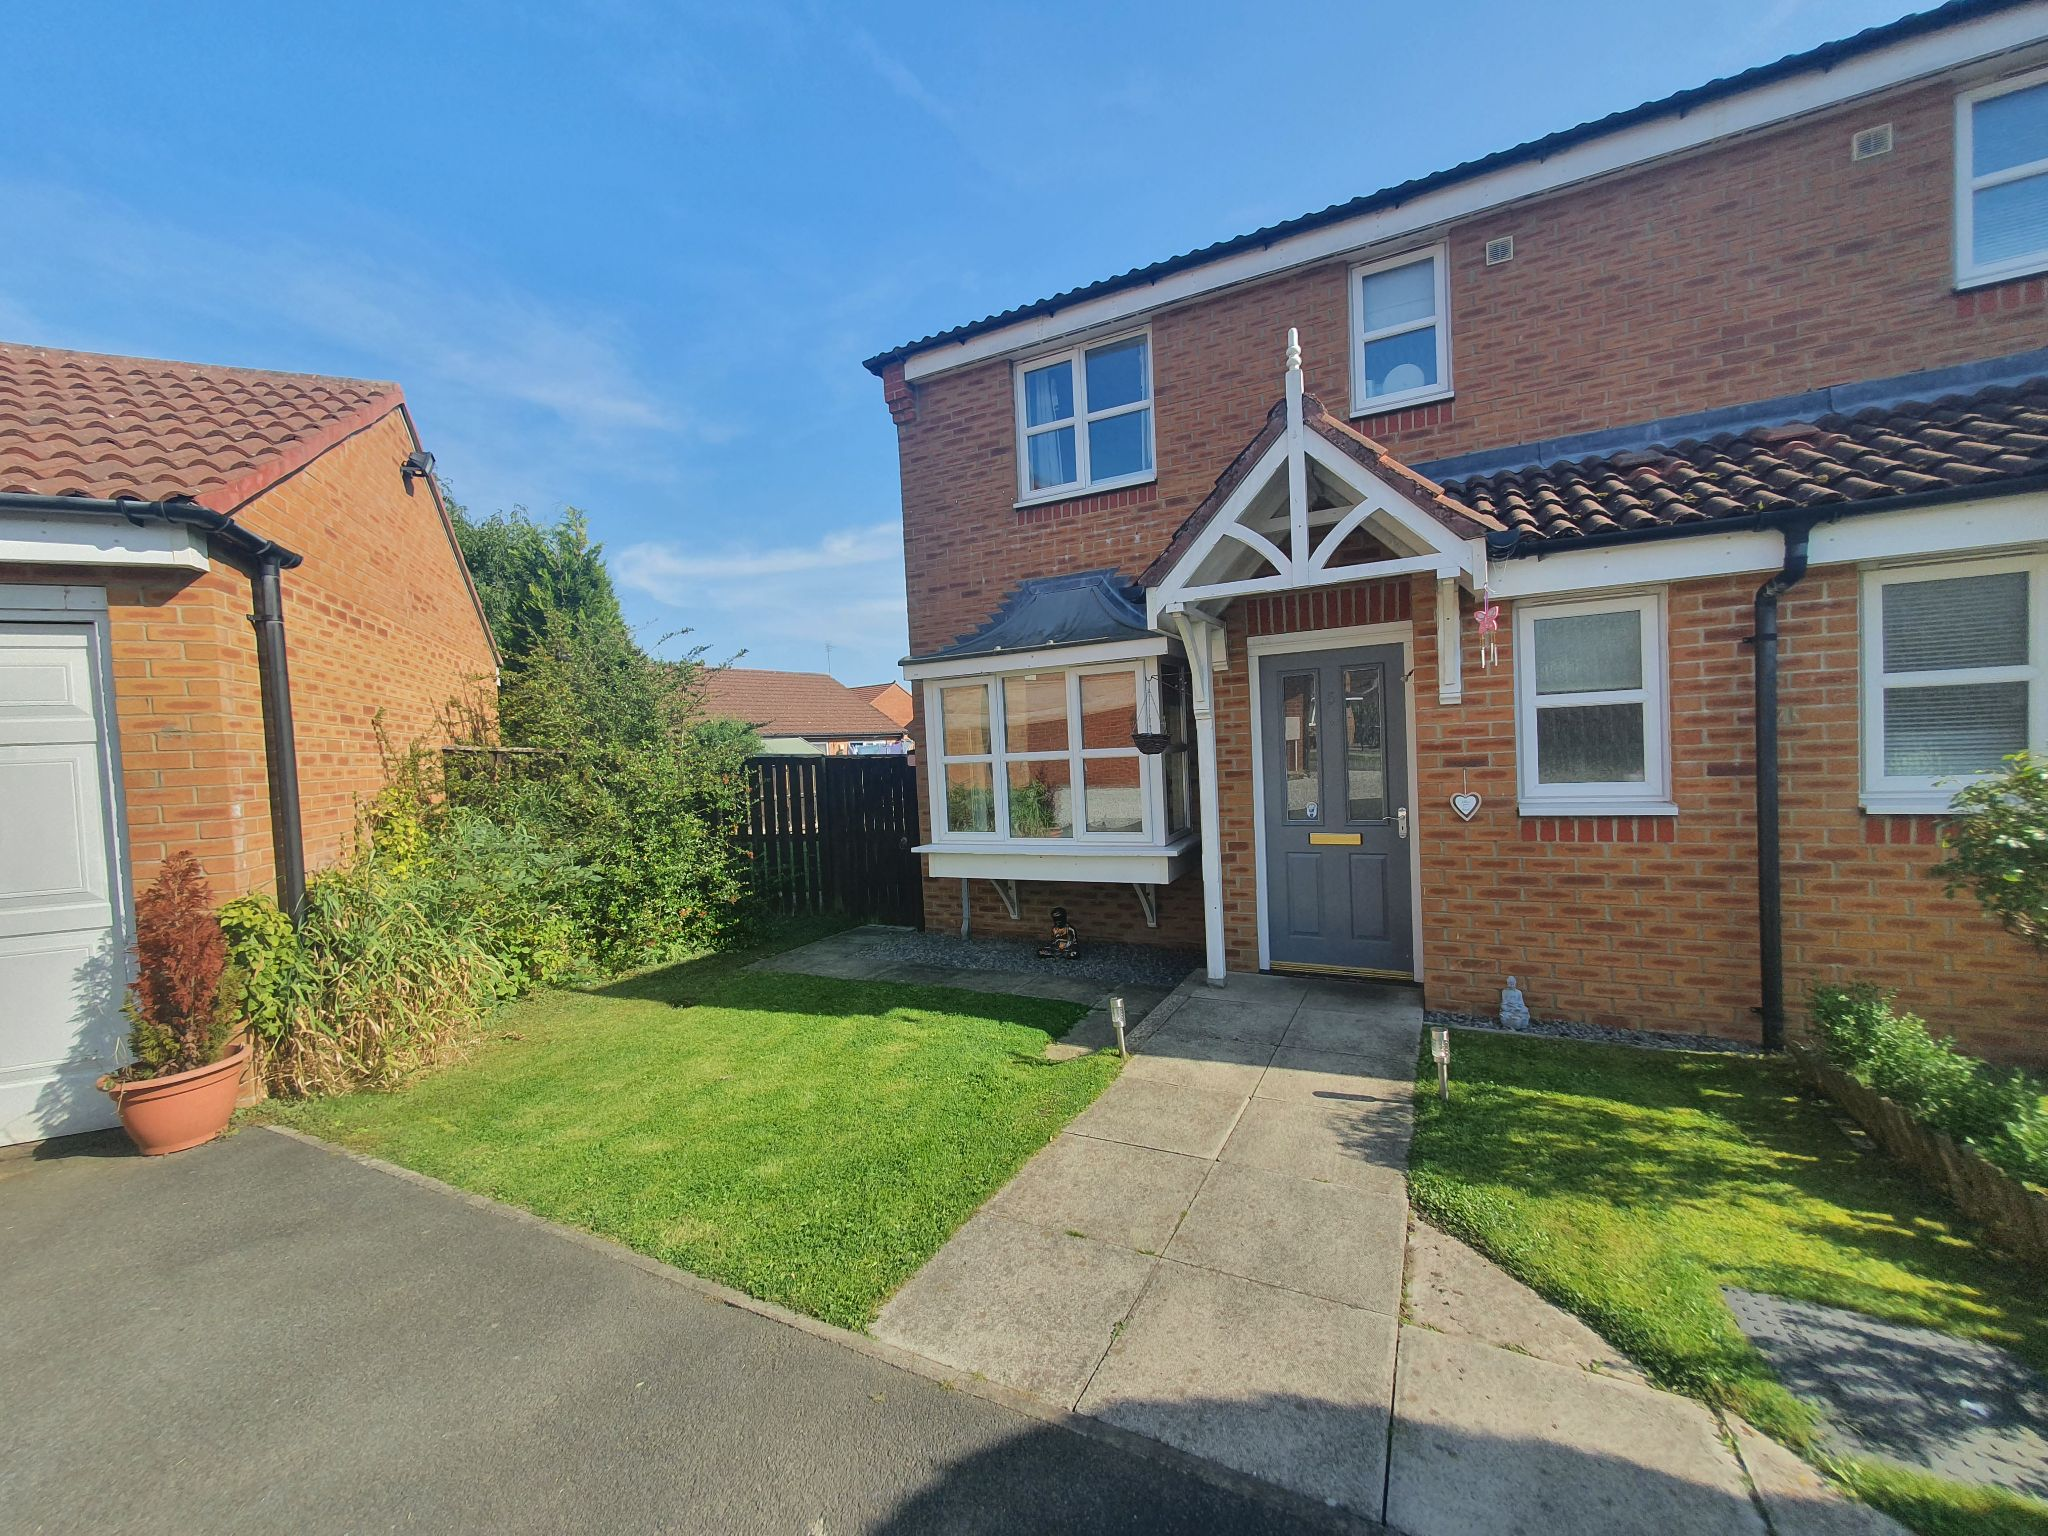 3 bedroom semi-detached house For Sale in Willington - Photograph 1.